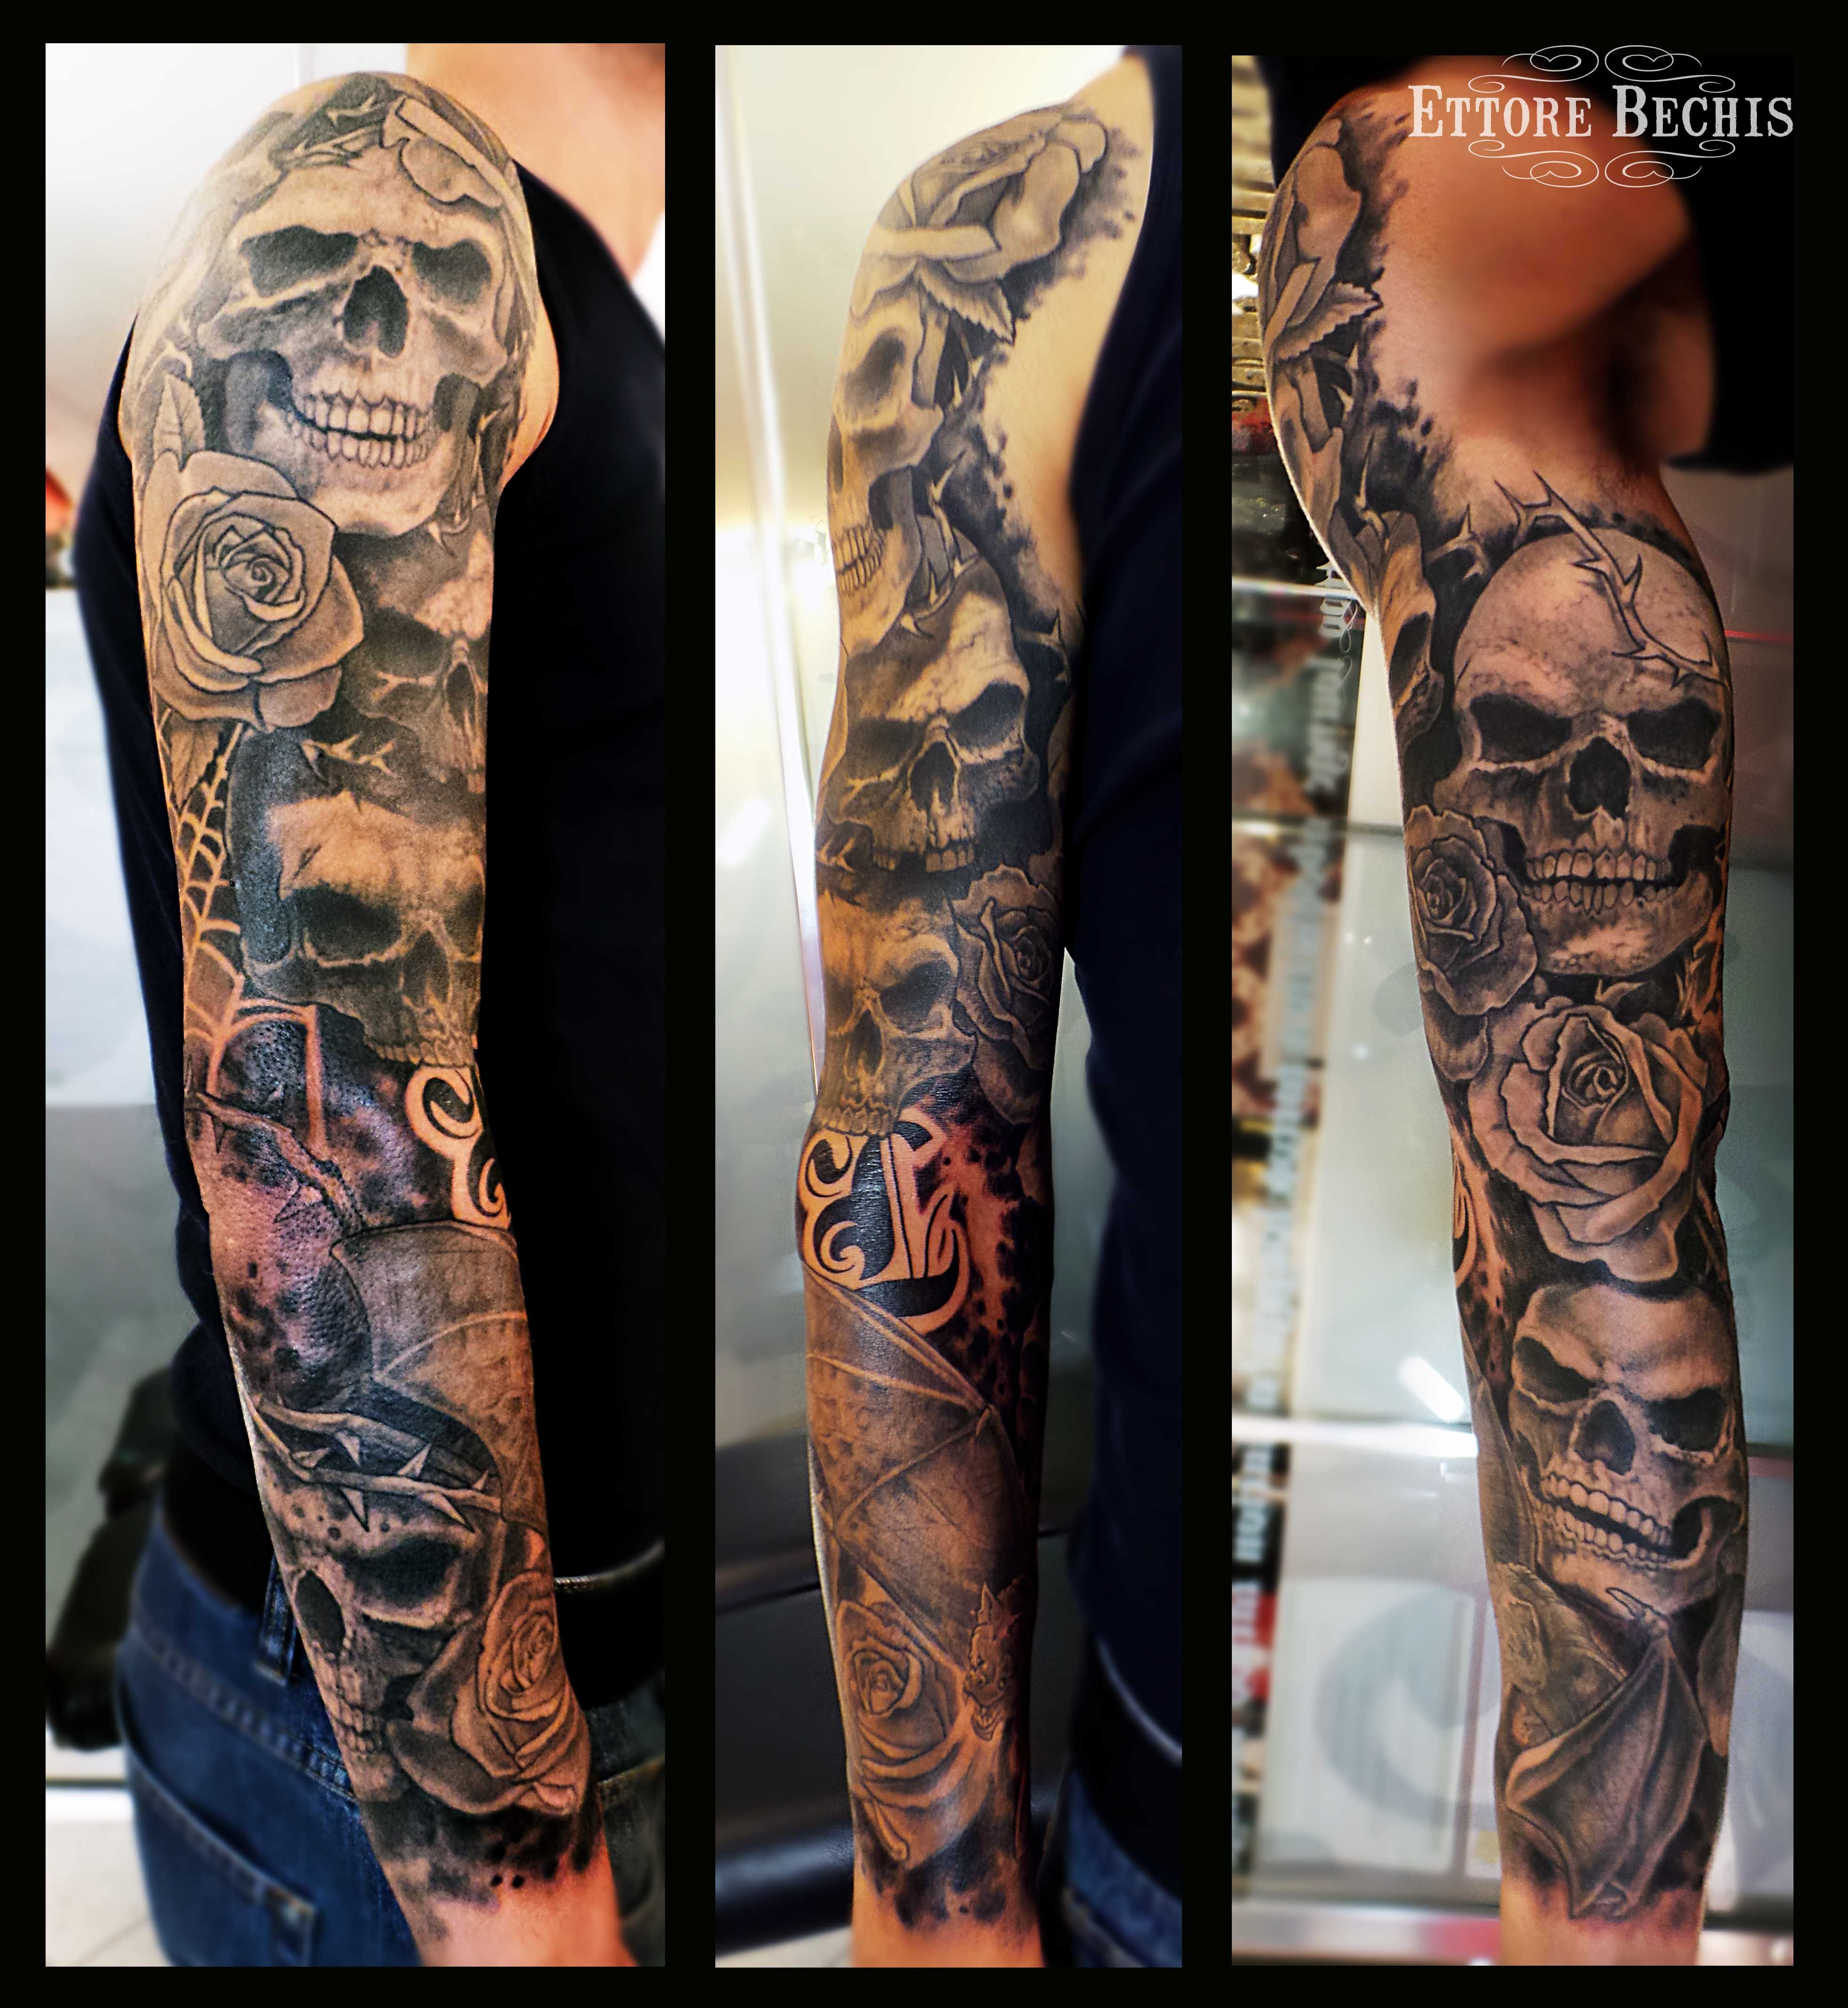 Www.ettore-bechis.com Best Miami Tattoo Shop Skull,miami